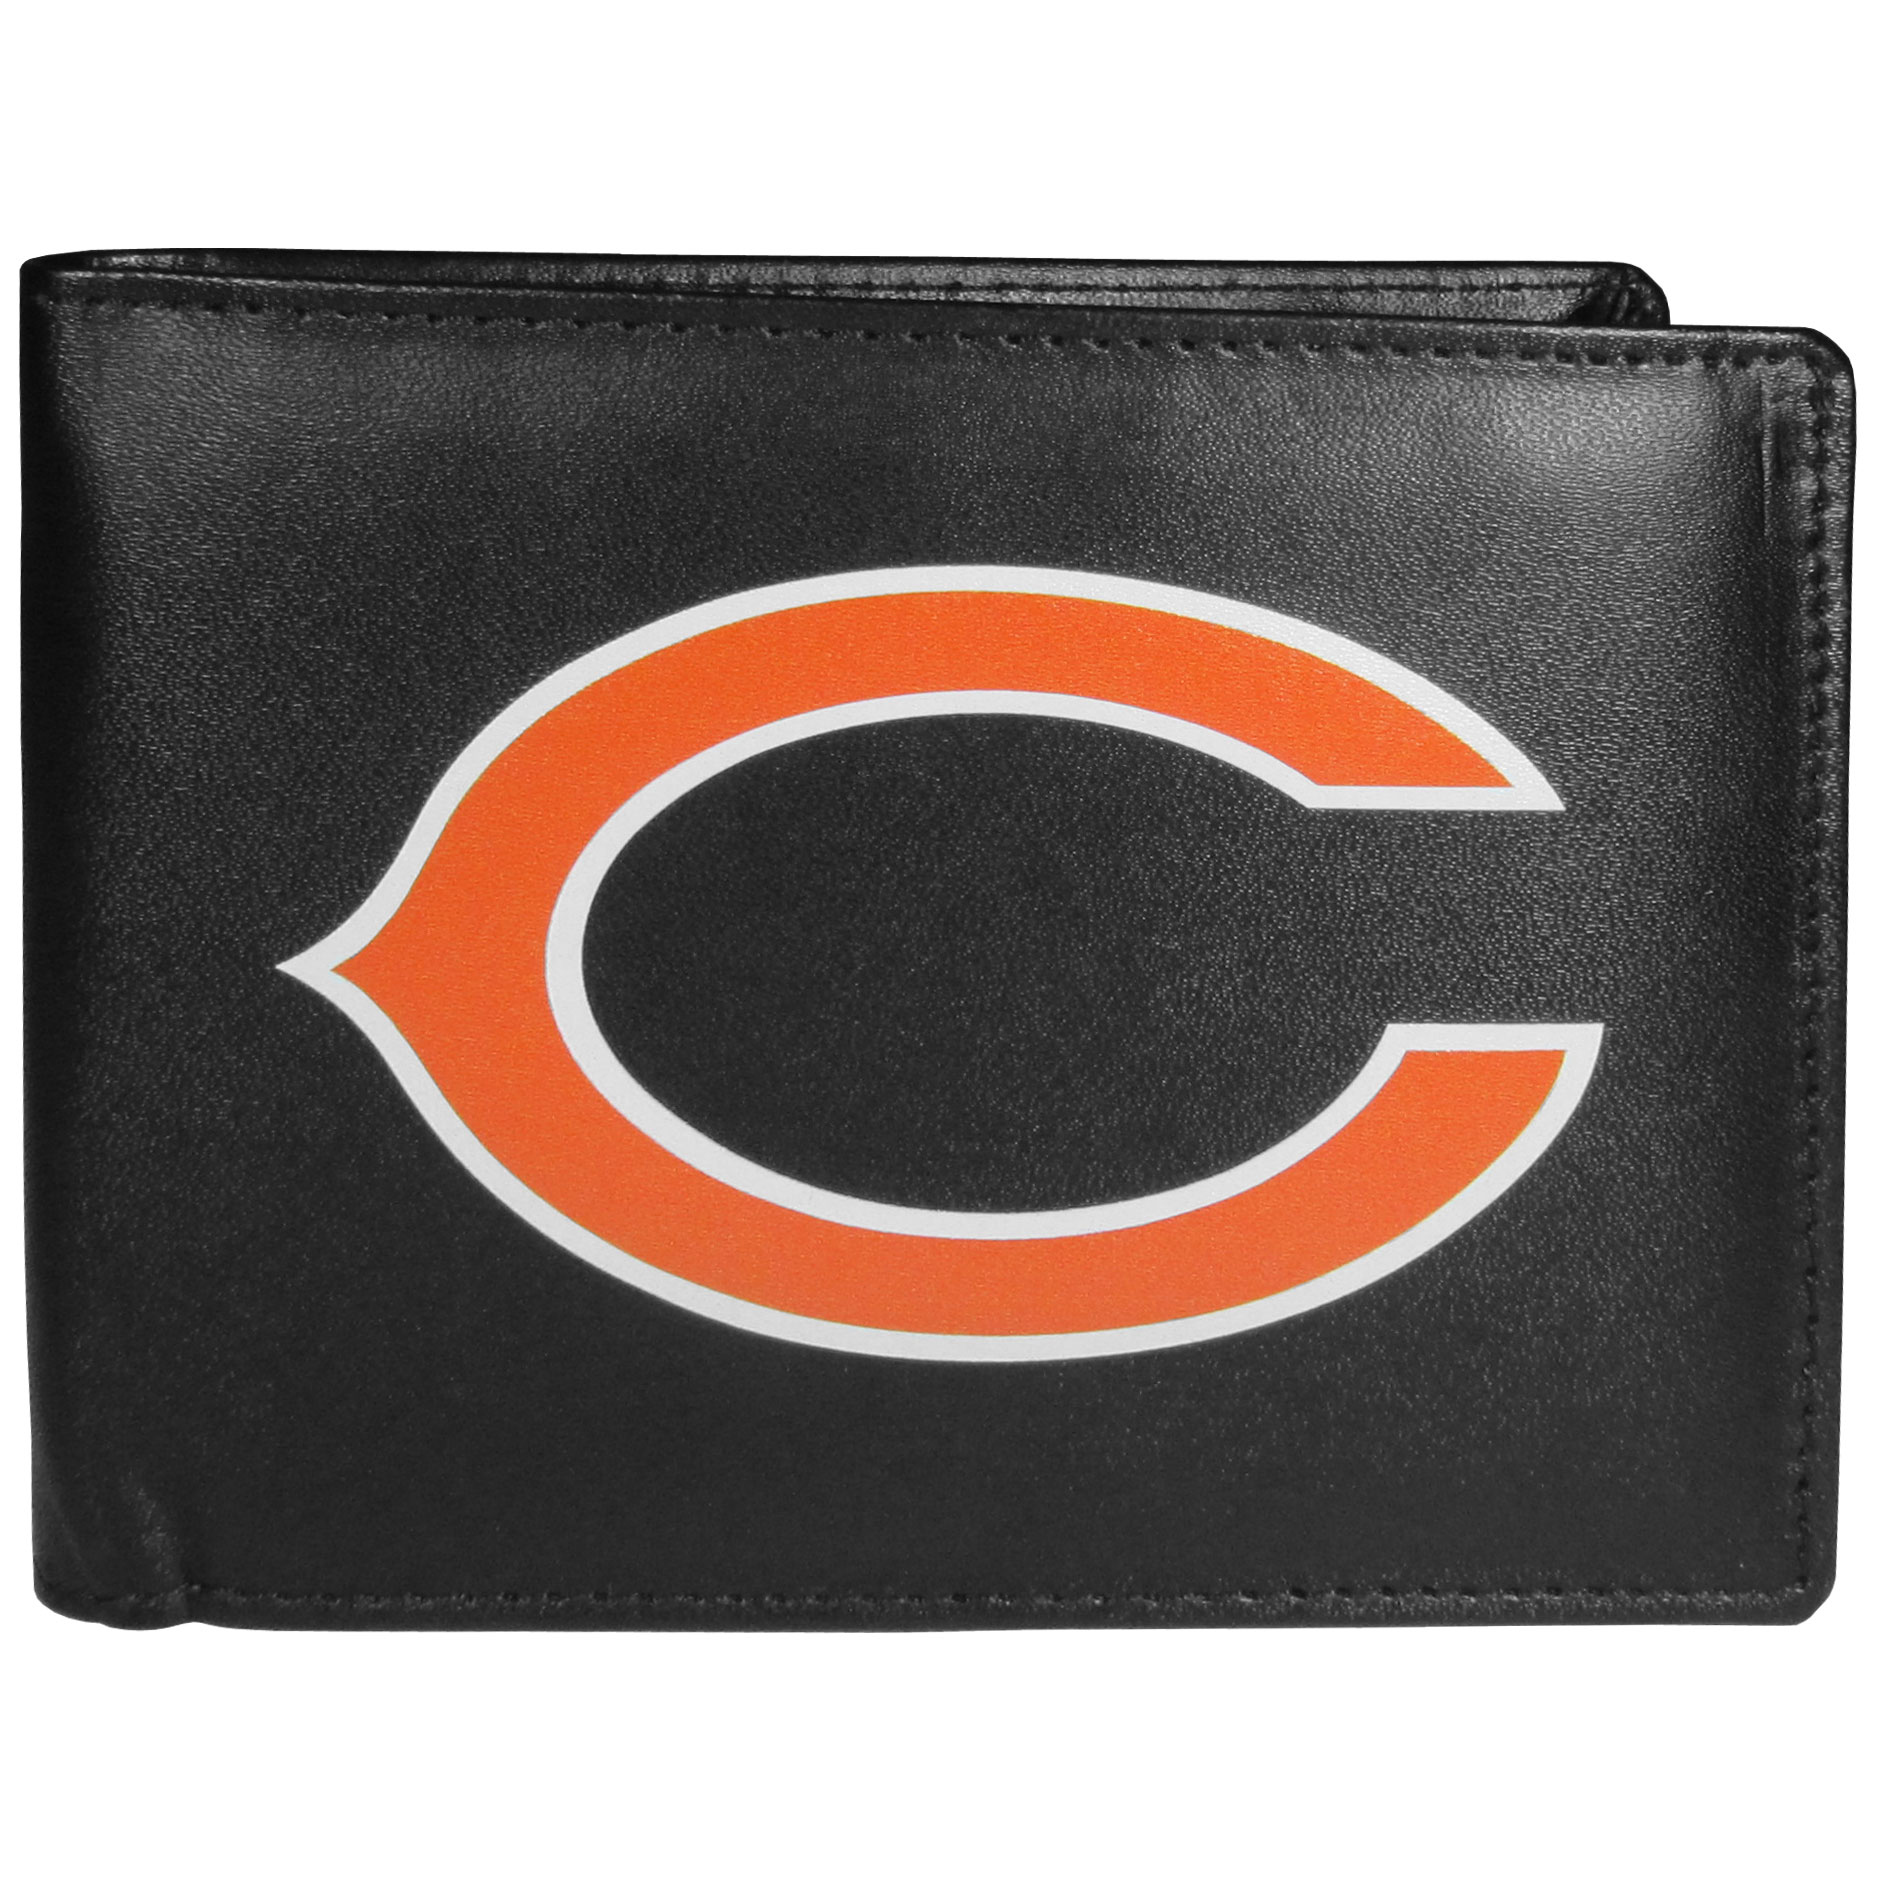 Chicago Bears Leather Bi-fold Wallet, Large Logo - Our classic fine leather bi-fold wallet is meticulously crafted with genuine leather that will age beautifully so you will have a quality wallet for years to come. The wallet opens to a large, billfold pocket and numerous credit card slots and has a convenient windowed ID slot. The front of the wallet features an extra large Chicago Bears printed logo.